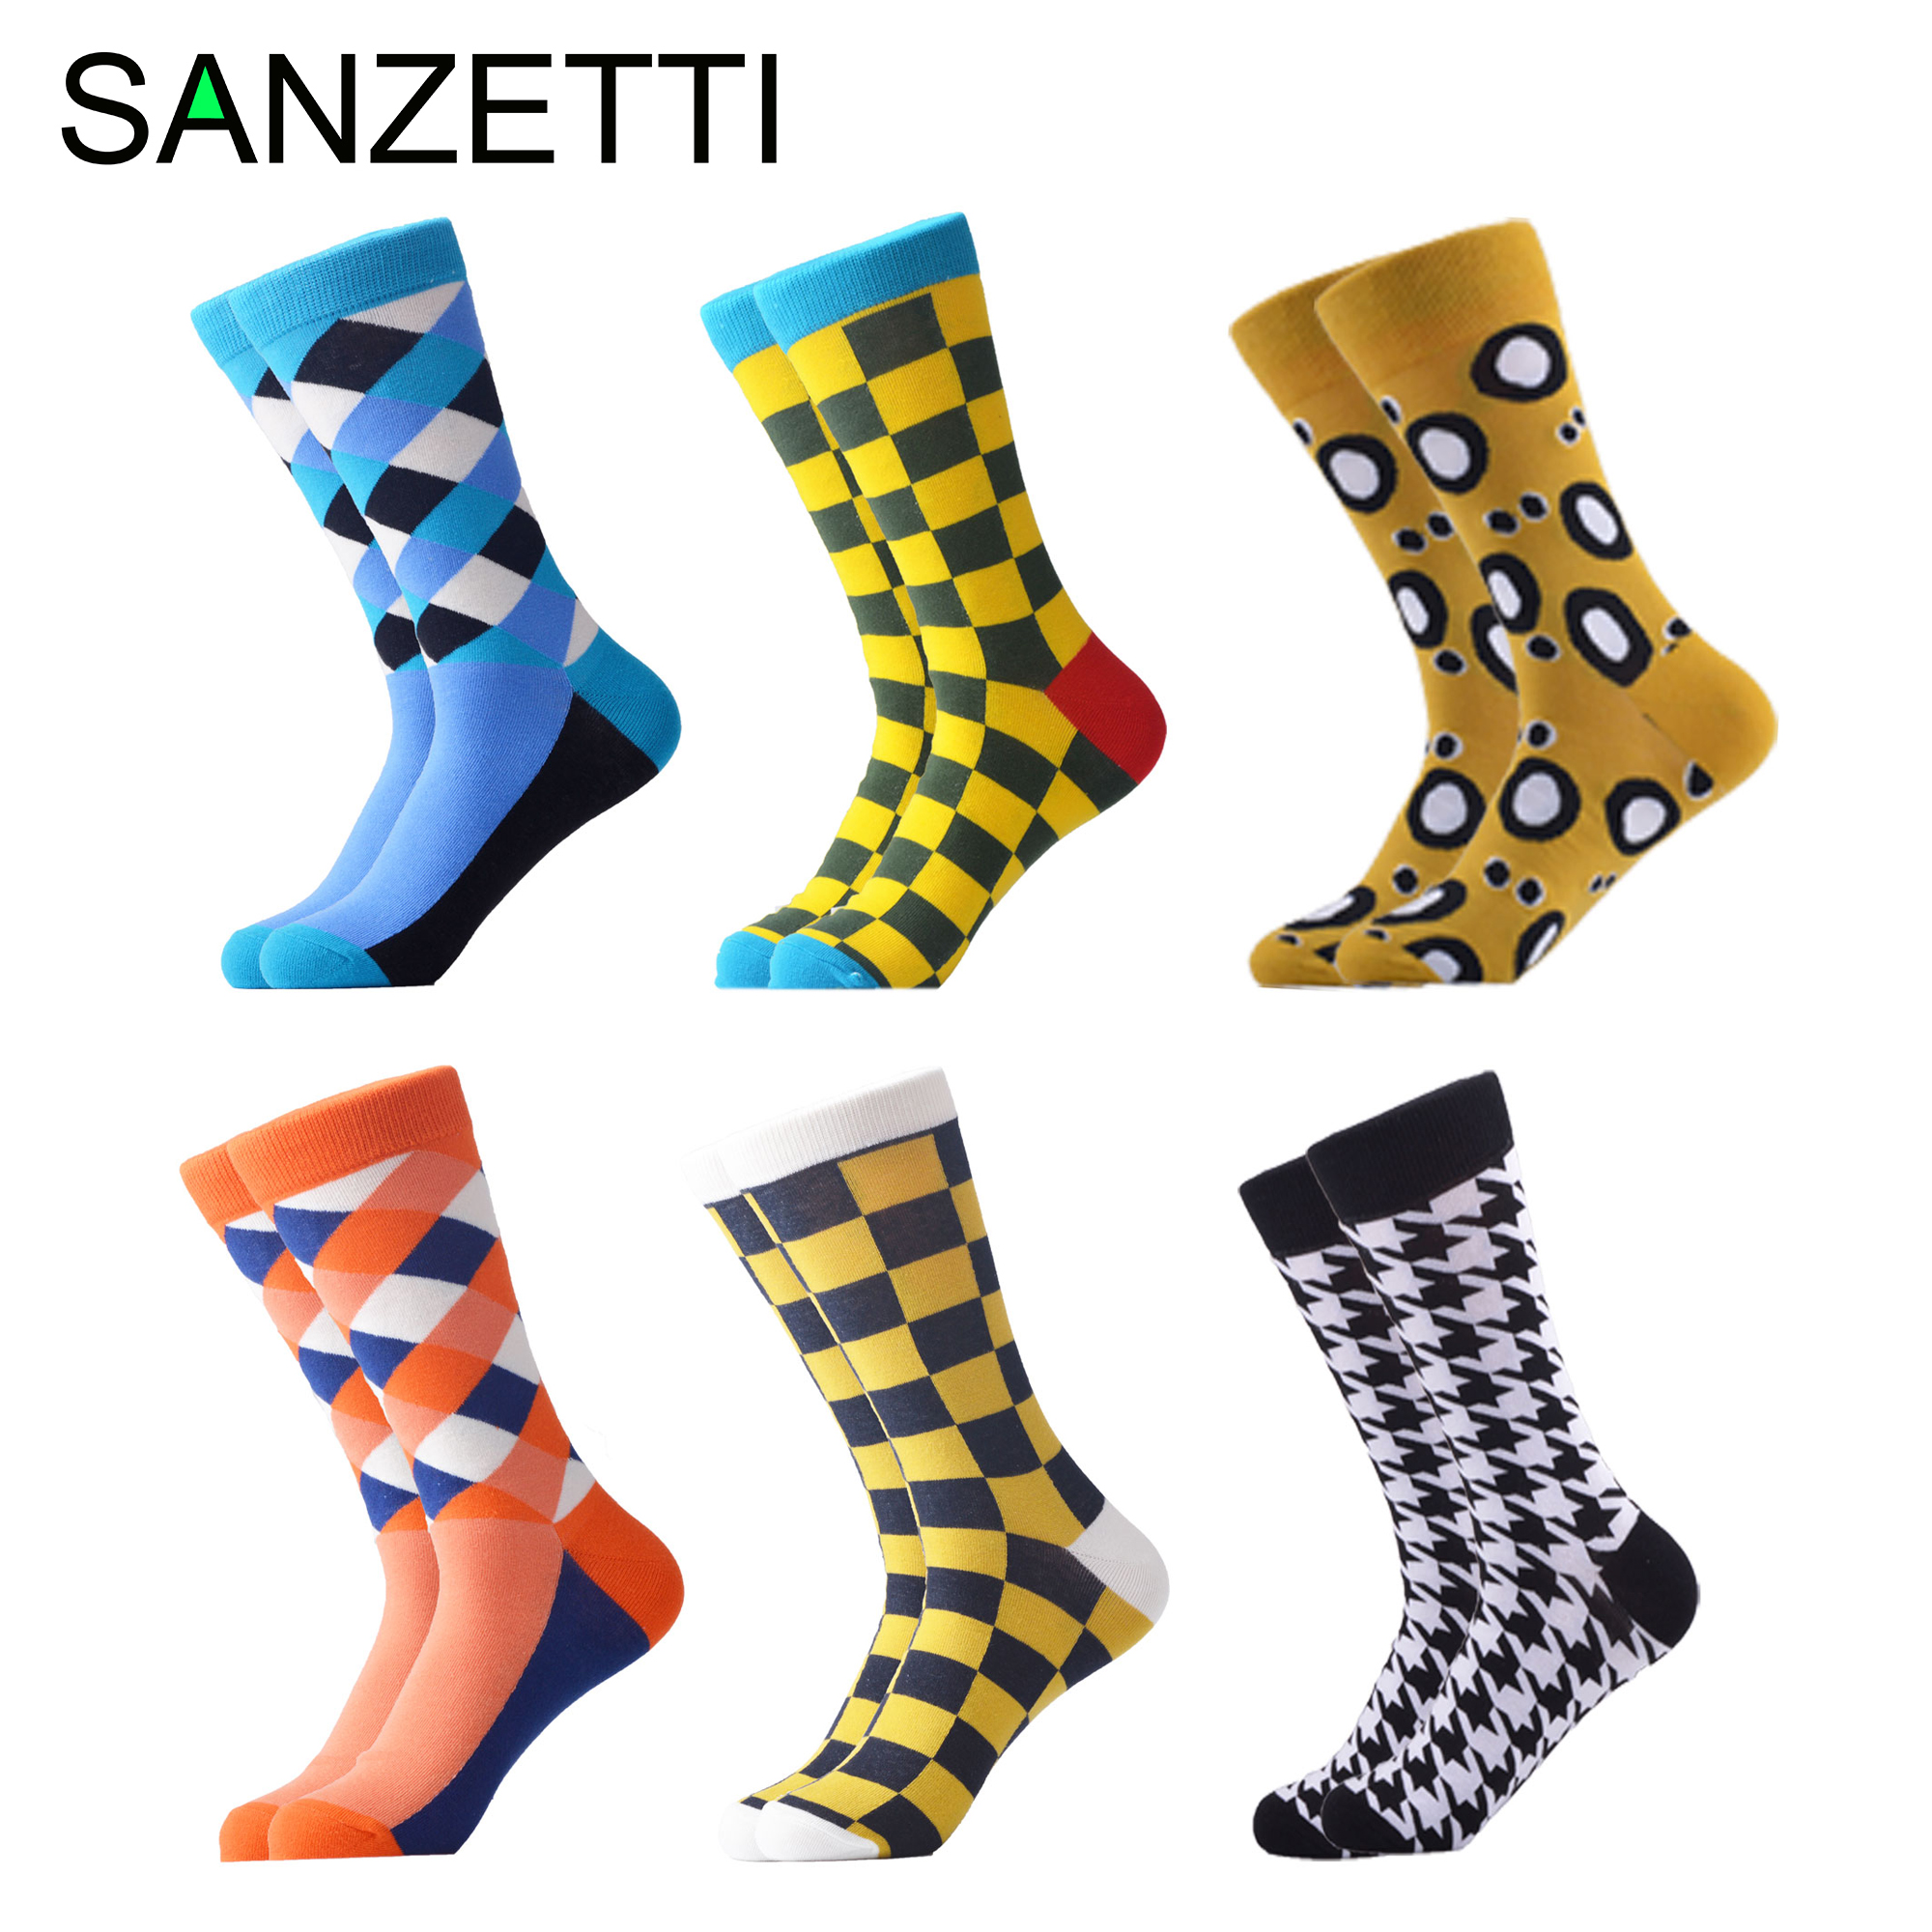 SANZETTI 6 Pair/Lot Men's  Breathab Casual Combed Cotton Socks Wedding Happy Crew Socks Funny Hip Hop Novelty Bright Dress Socks